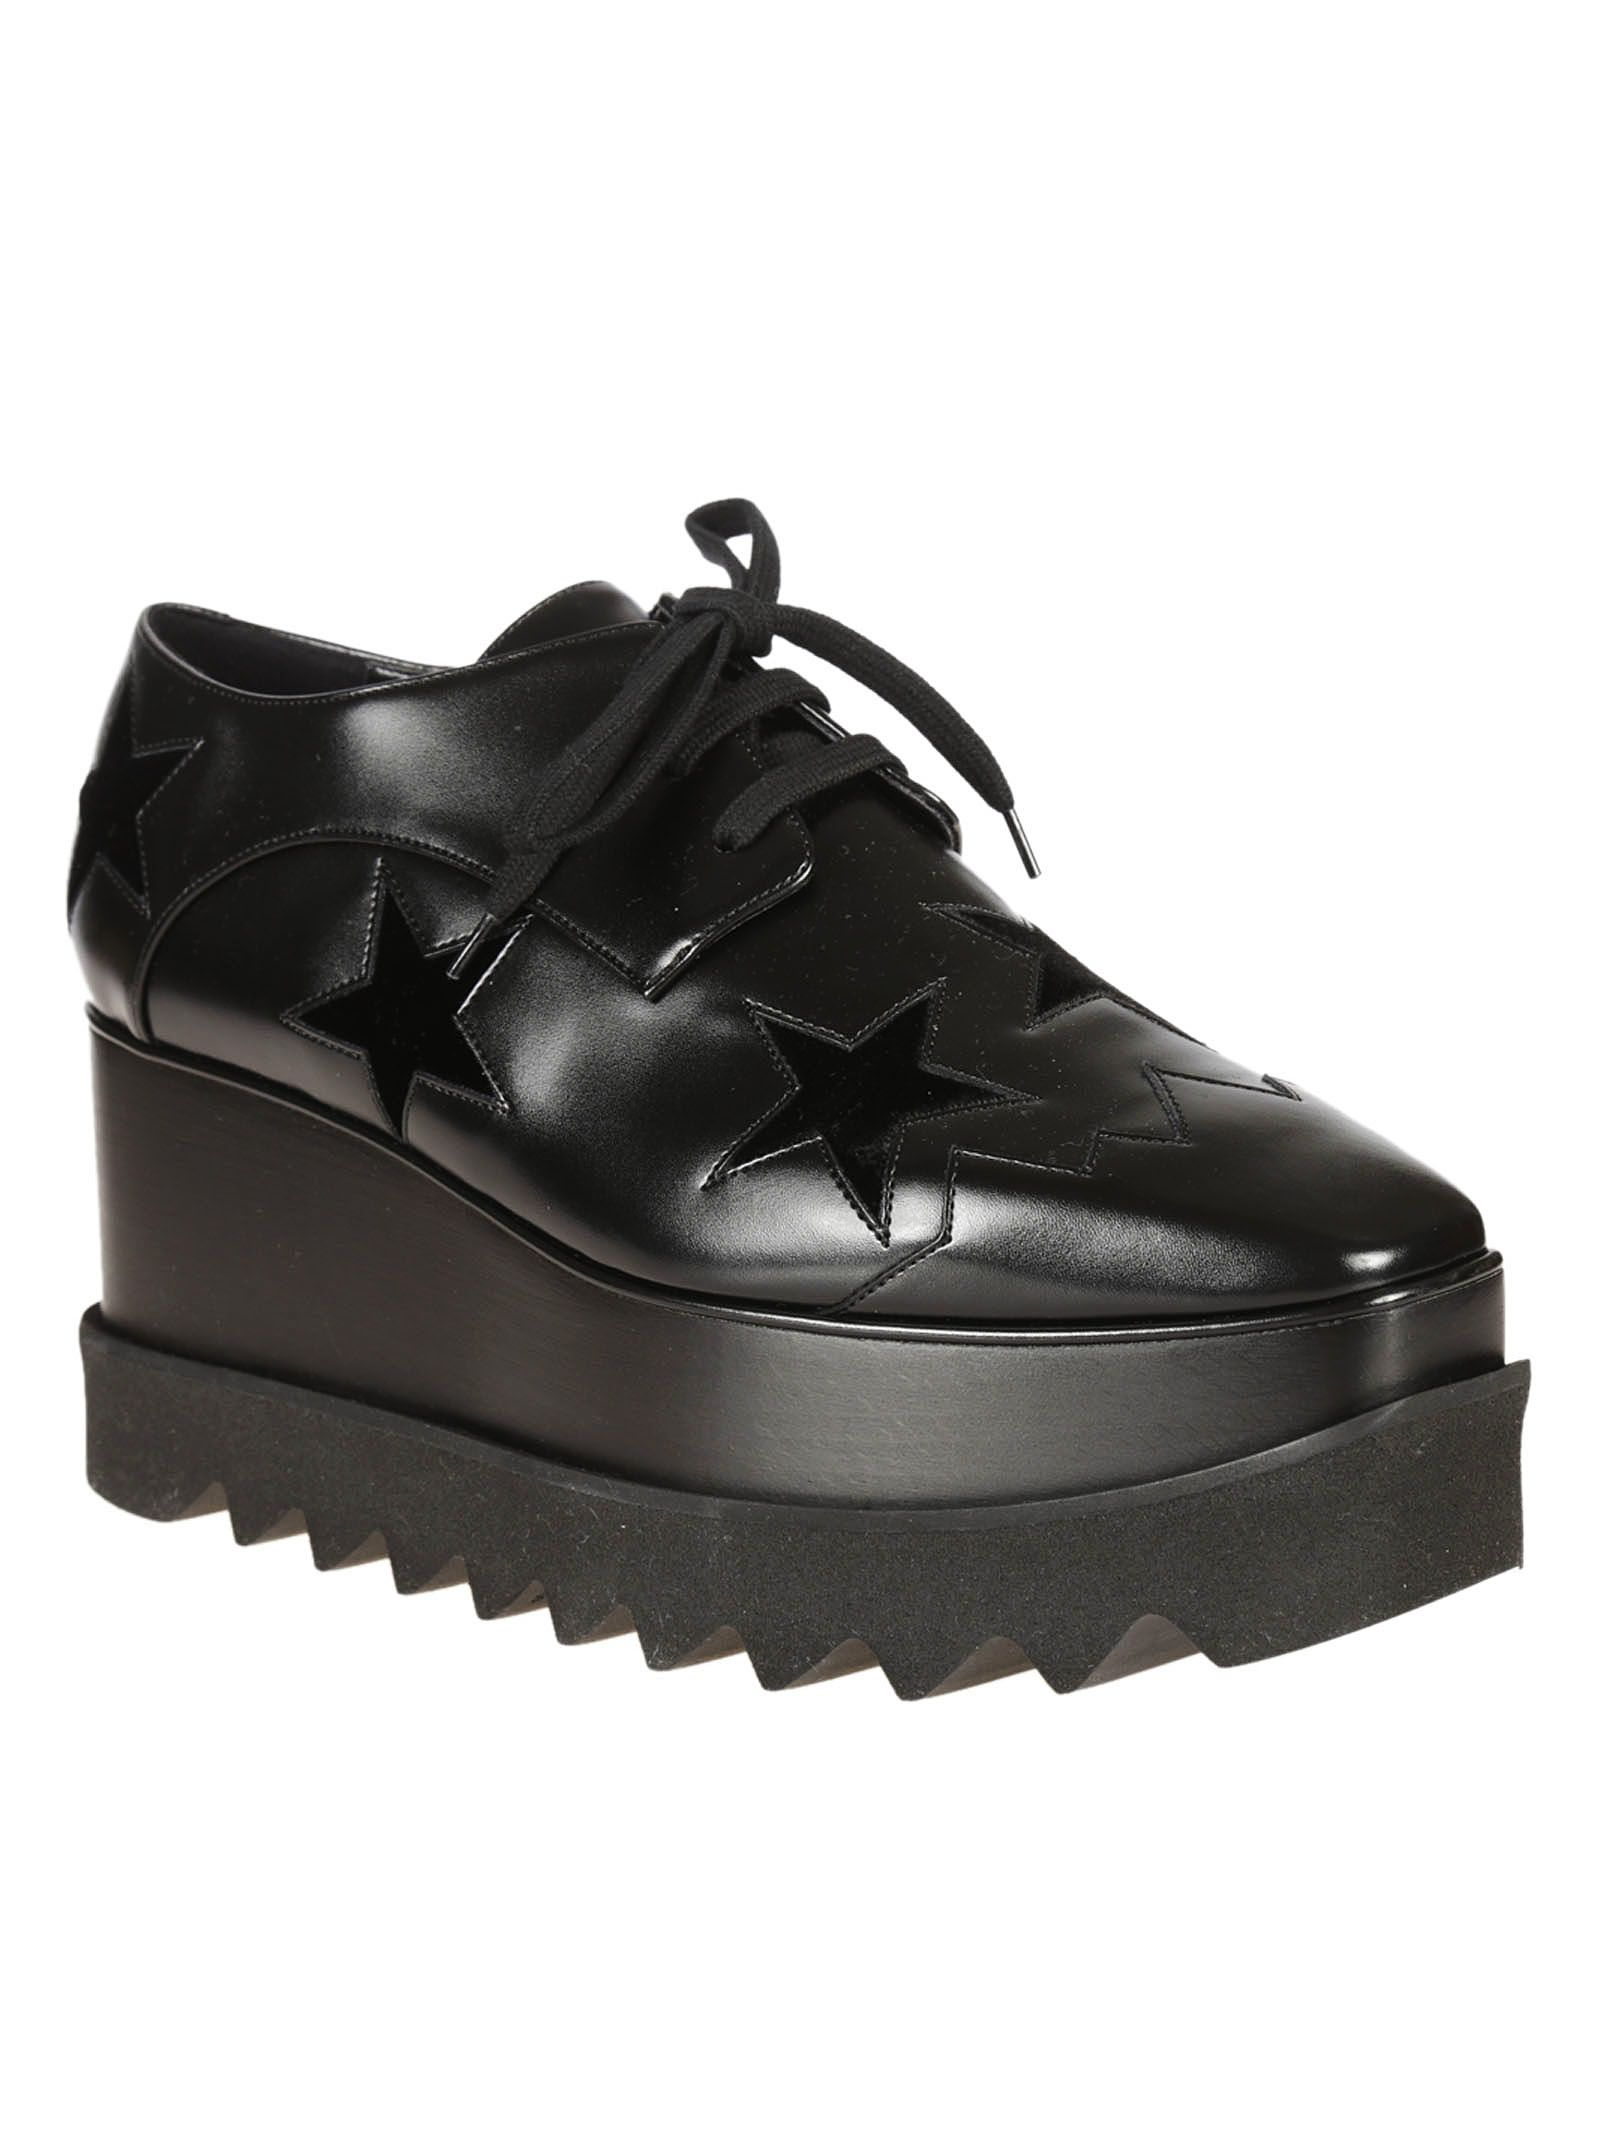 2e41e5bc15a6 Stella McCartney Stella McCartney Star Elyse Platform Lace-up Shoes ...